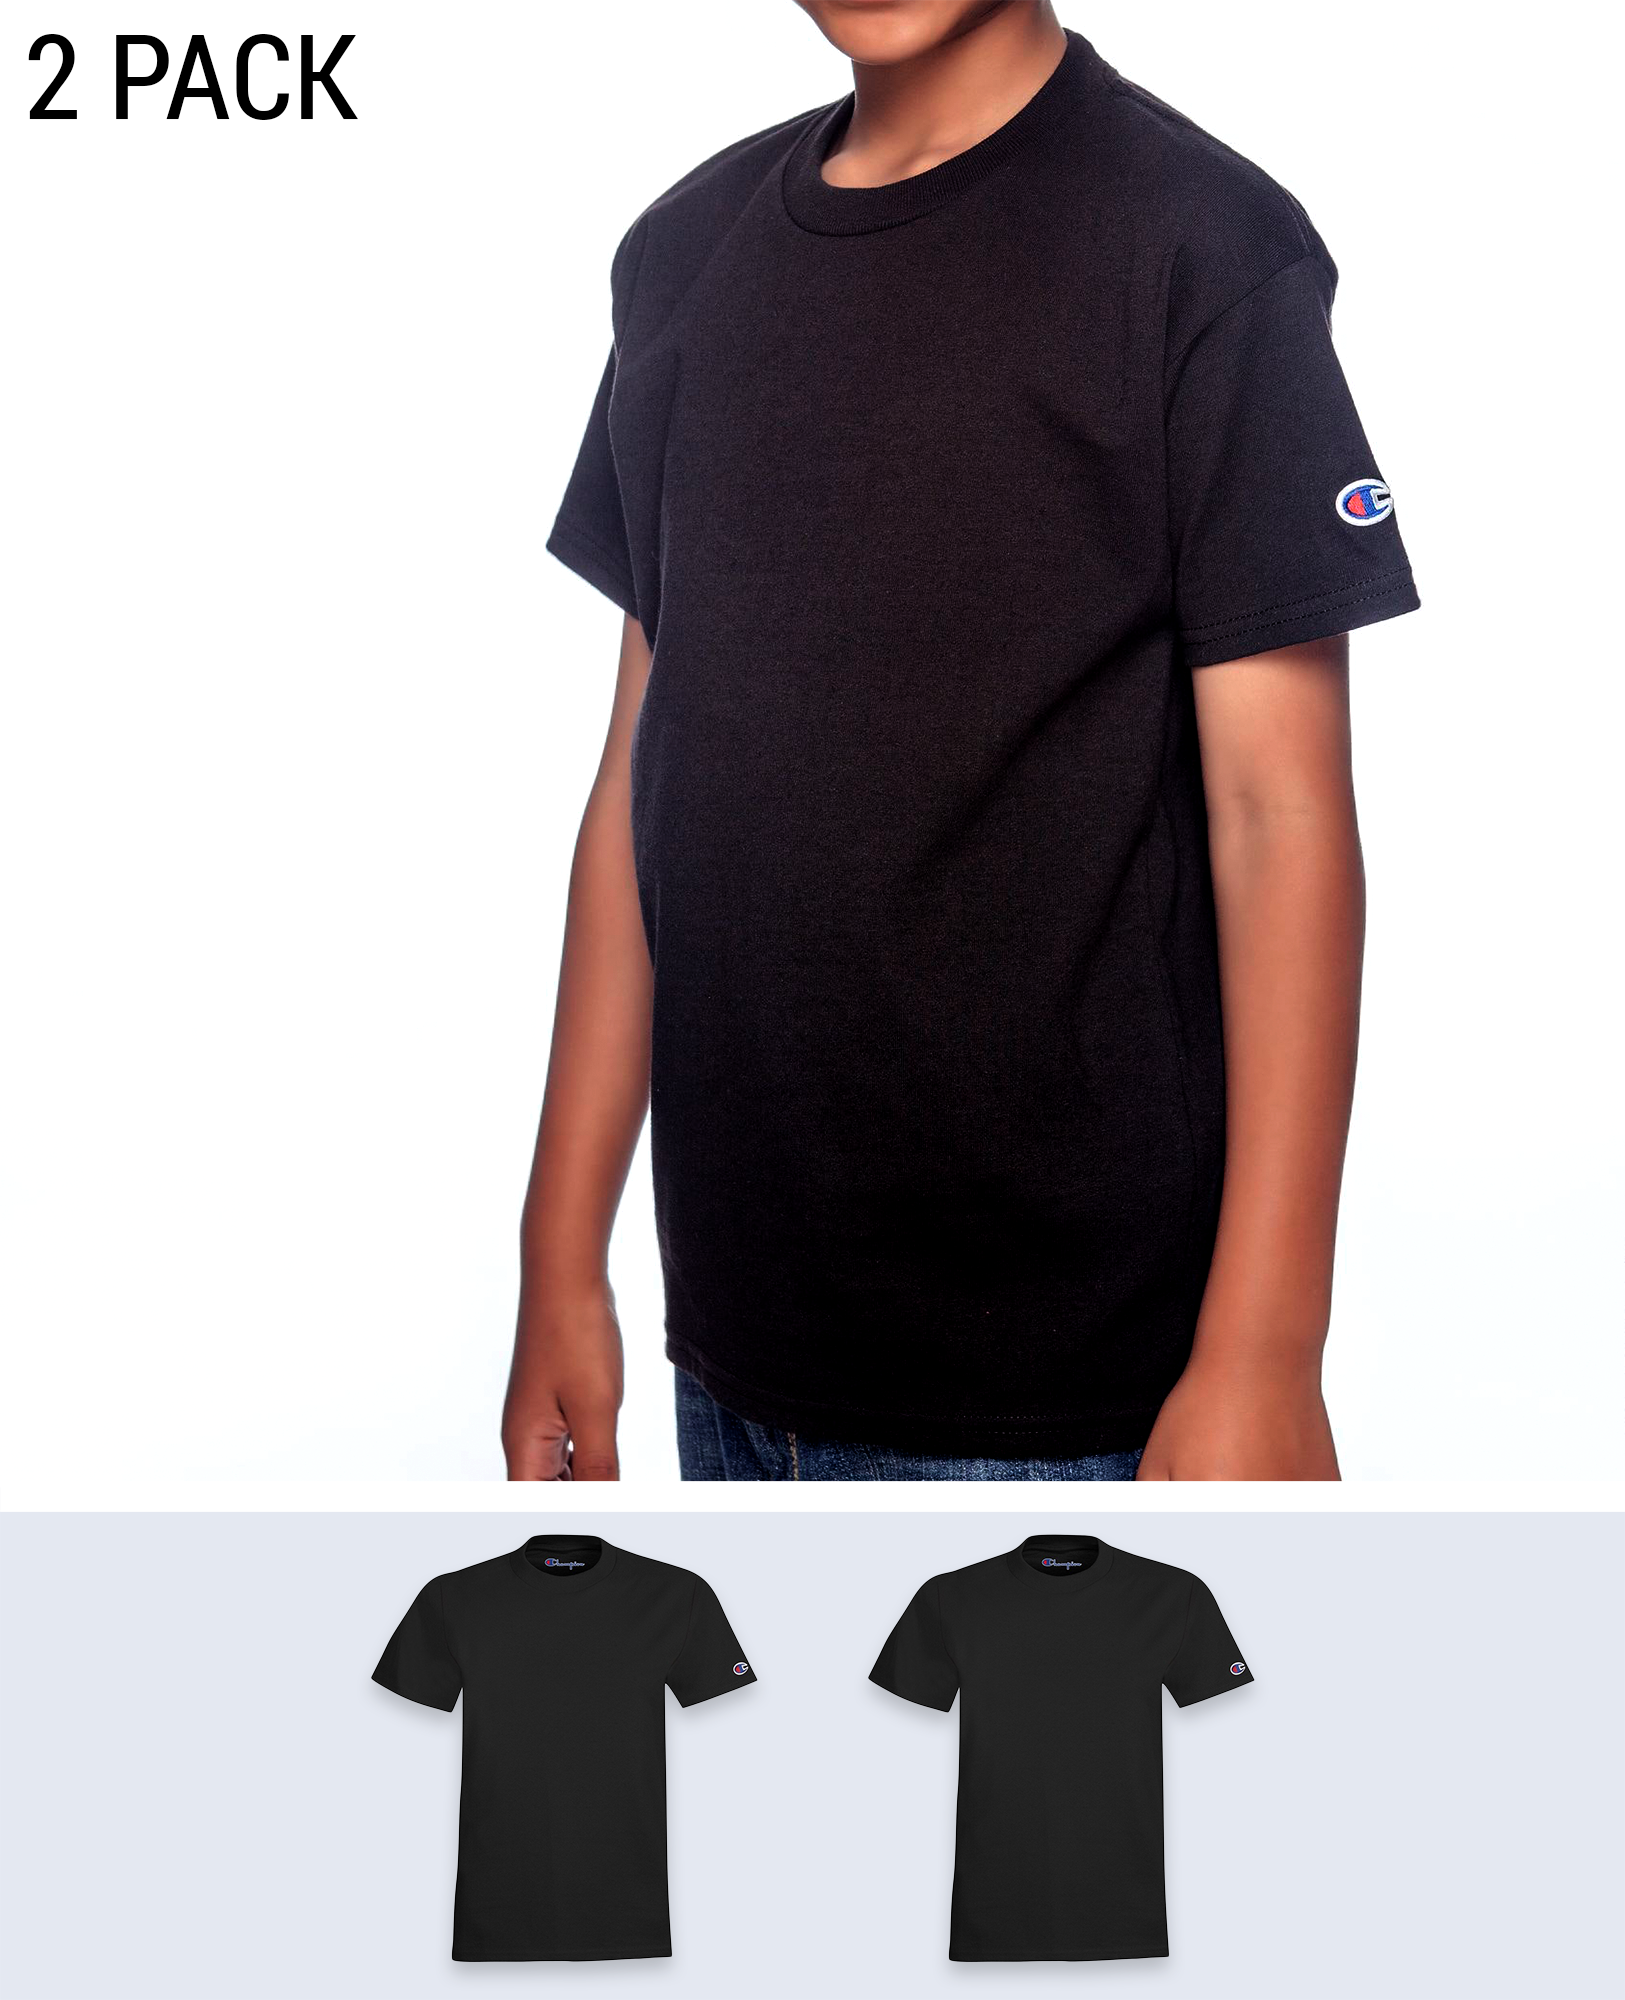 2 pack Sleeve Logo Youth's T-shirt - T-Shirts - Champion - BRANMA